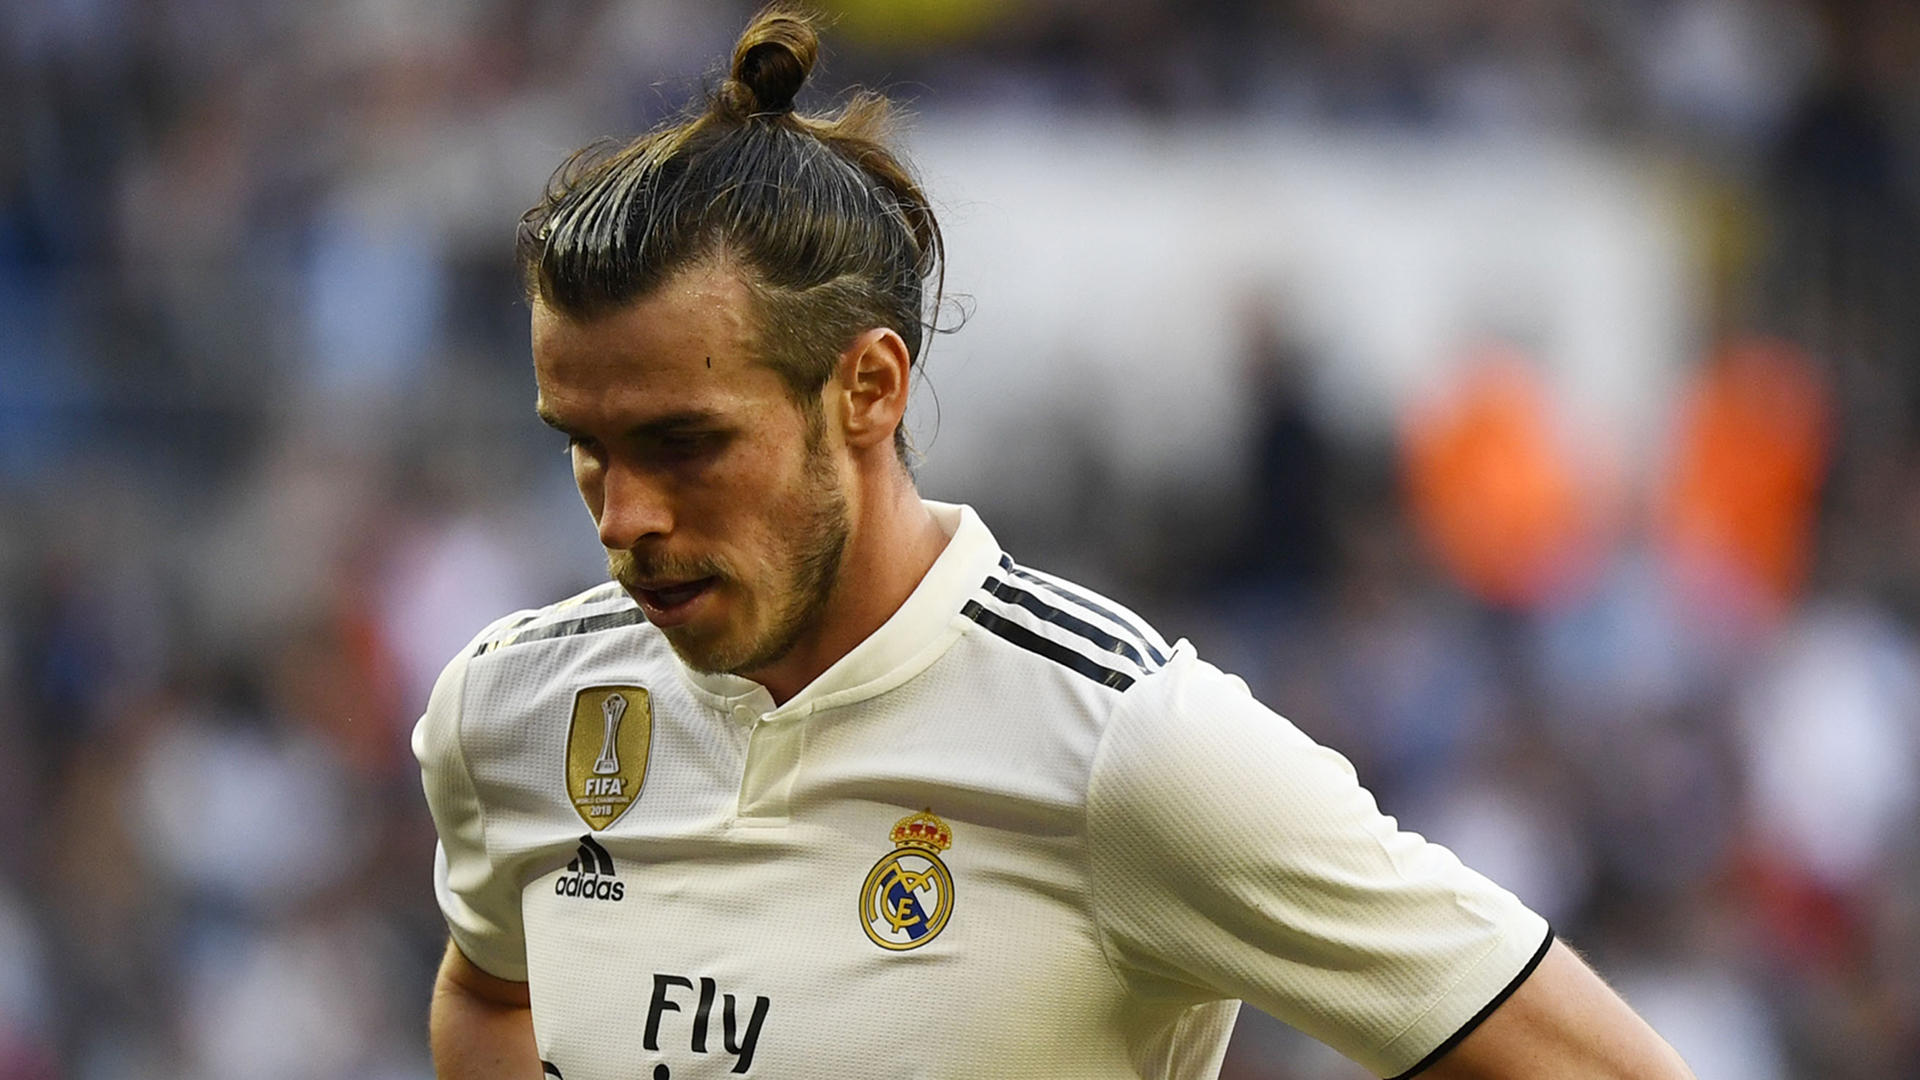 Transfer news and rumours LIVE: Fee issues stalling Bale's China move